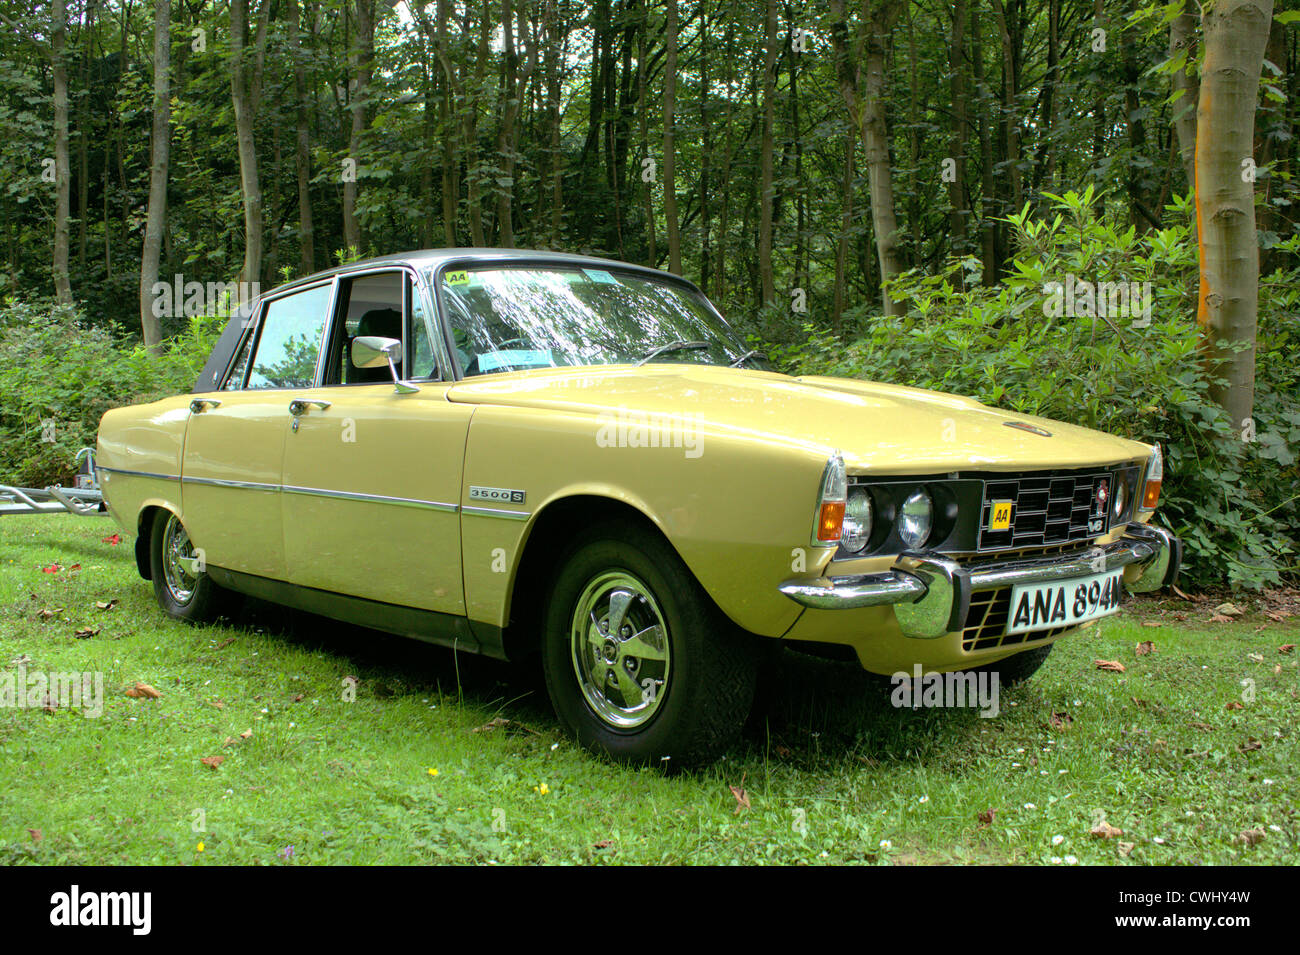 Rover 3500 at Lytham Hall - Stock Image